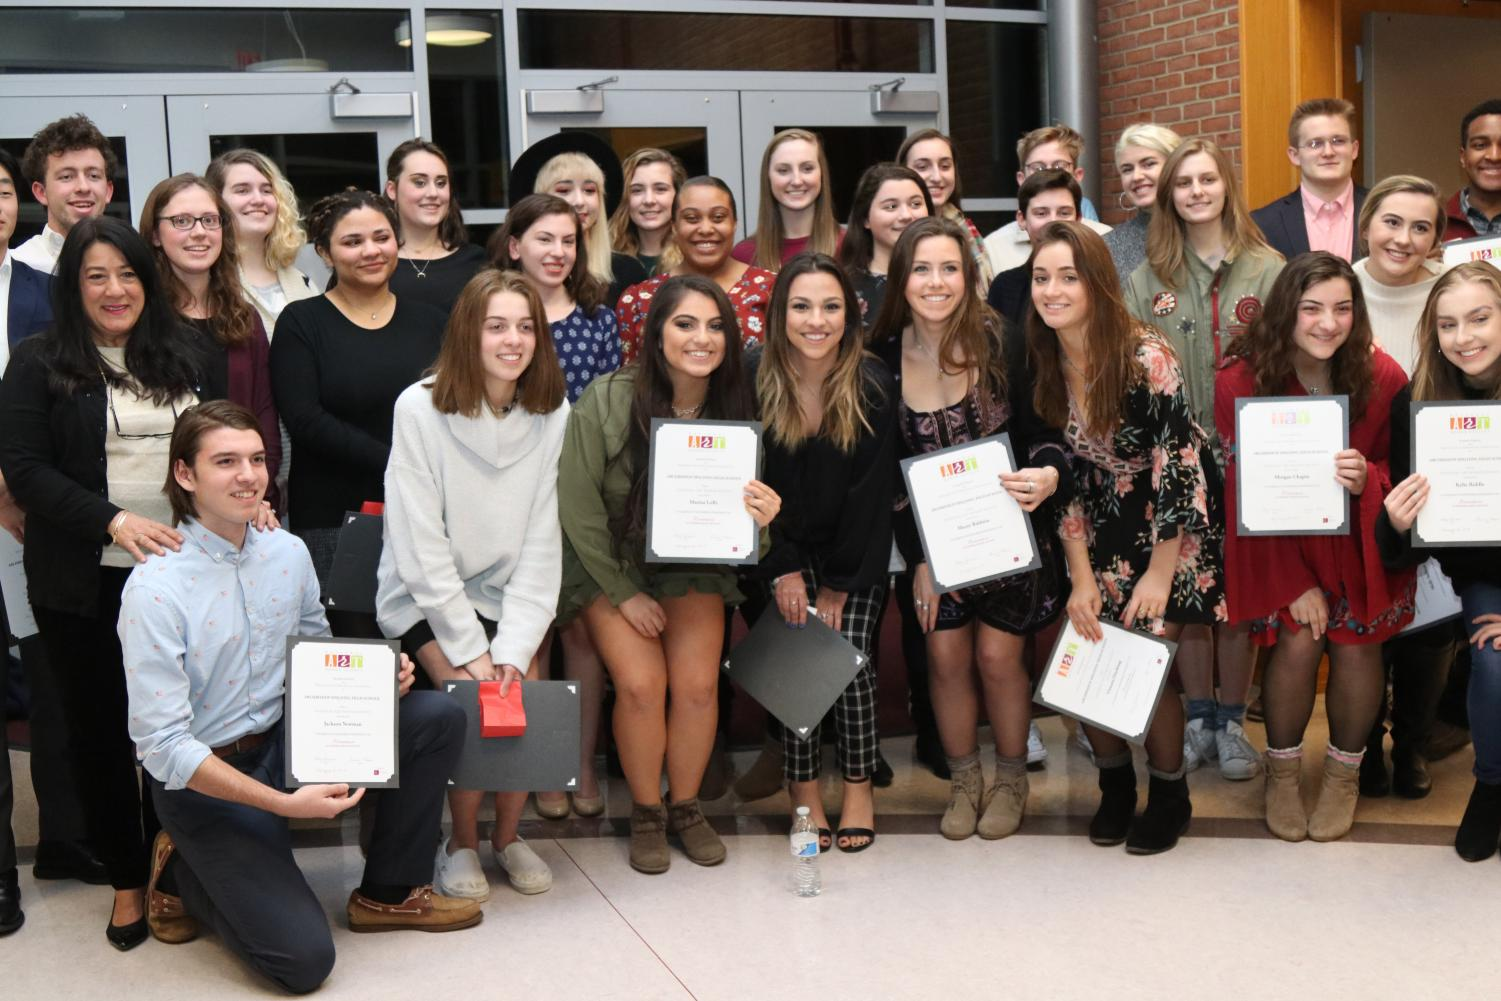 Art NHS inductees at the March 26th ceremony.